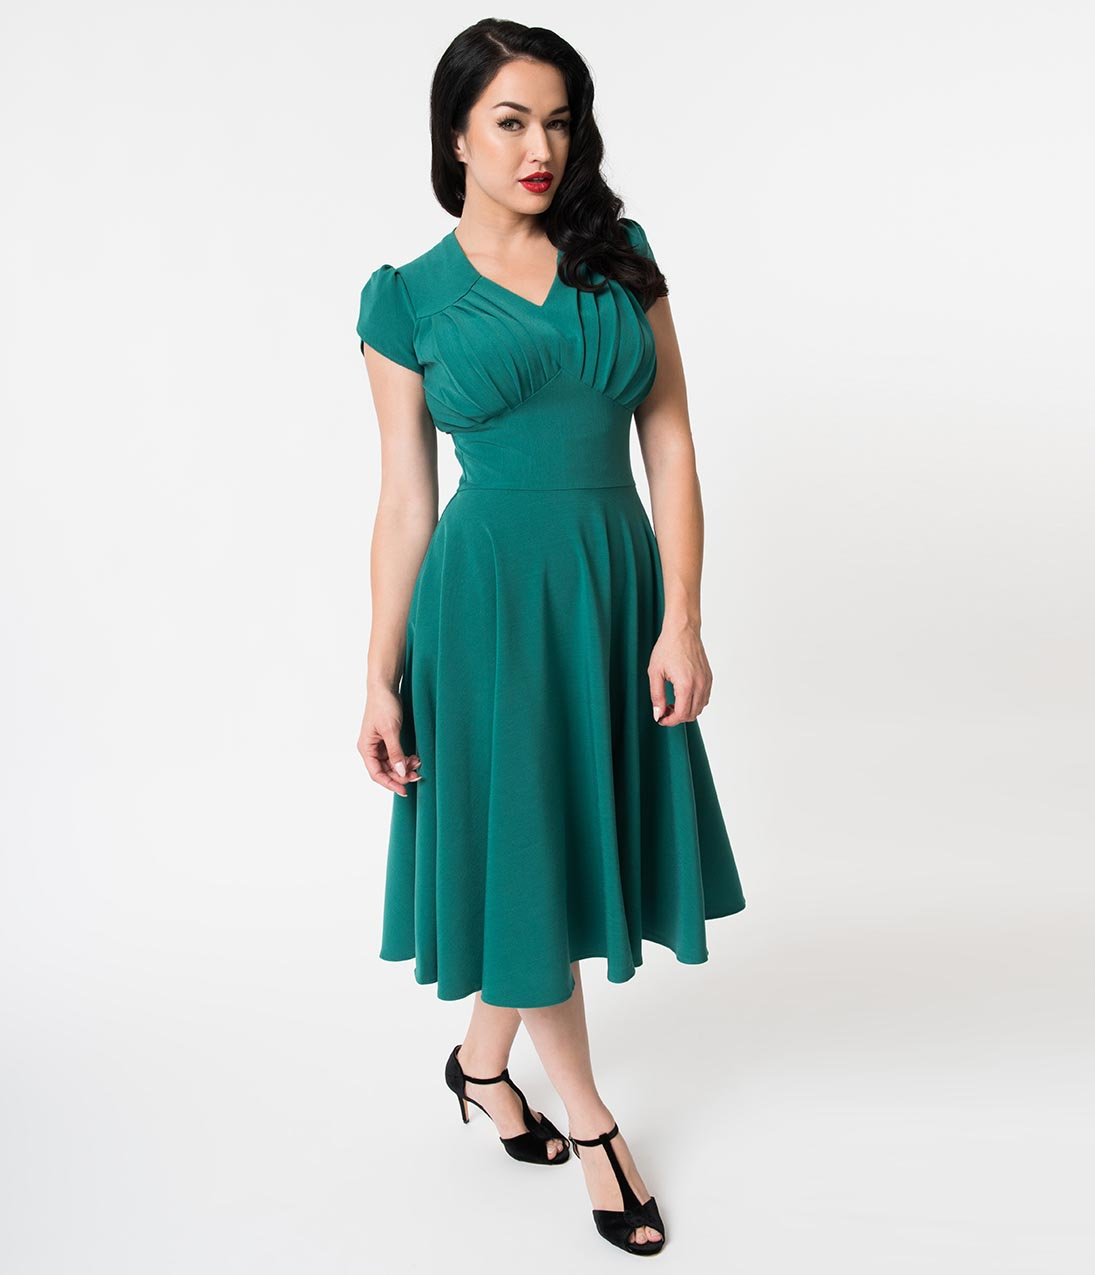 1950s Dresses, 50s Dresses | 1950s Style Dresses Retro Style Emerald Green Petal Sleeve Pleated Swing Dress $98.00 AT vintagedancer.com